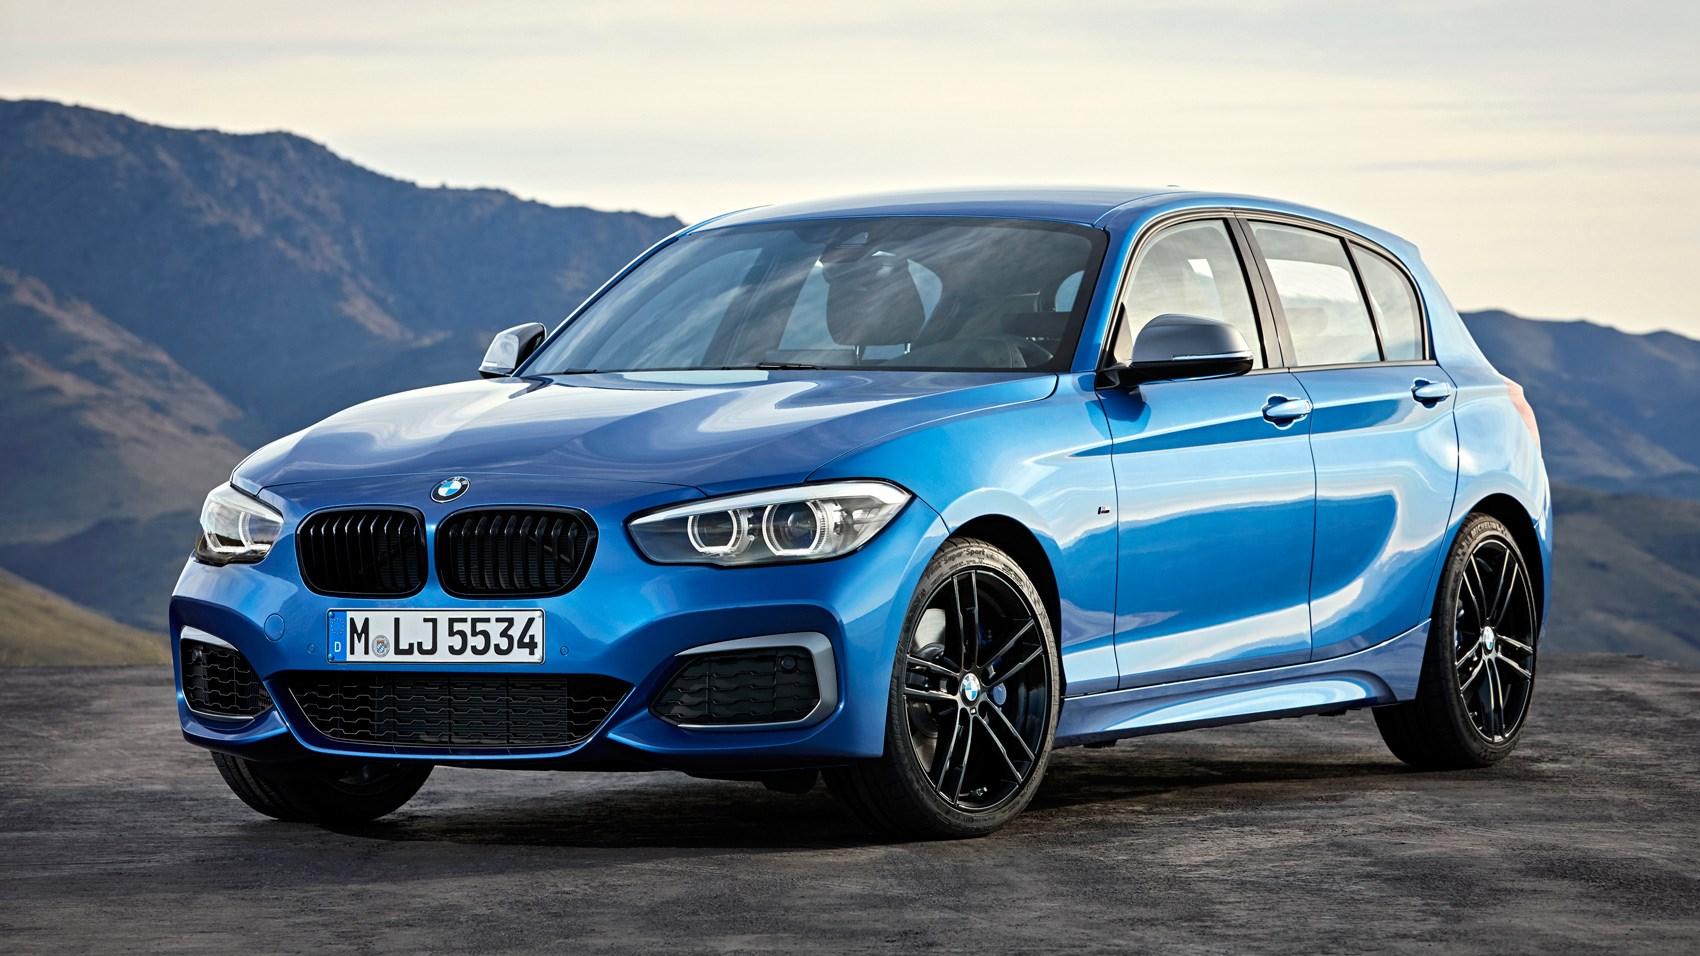 bmw m140i 2017 review car magazine. Black Bedroom Furniture Sets. Home Design Ideas